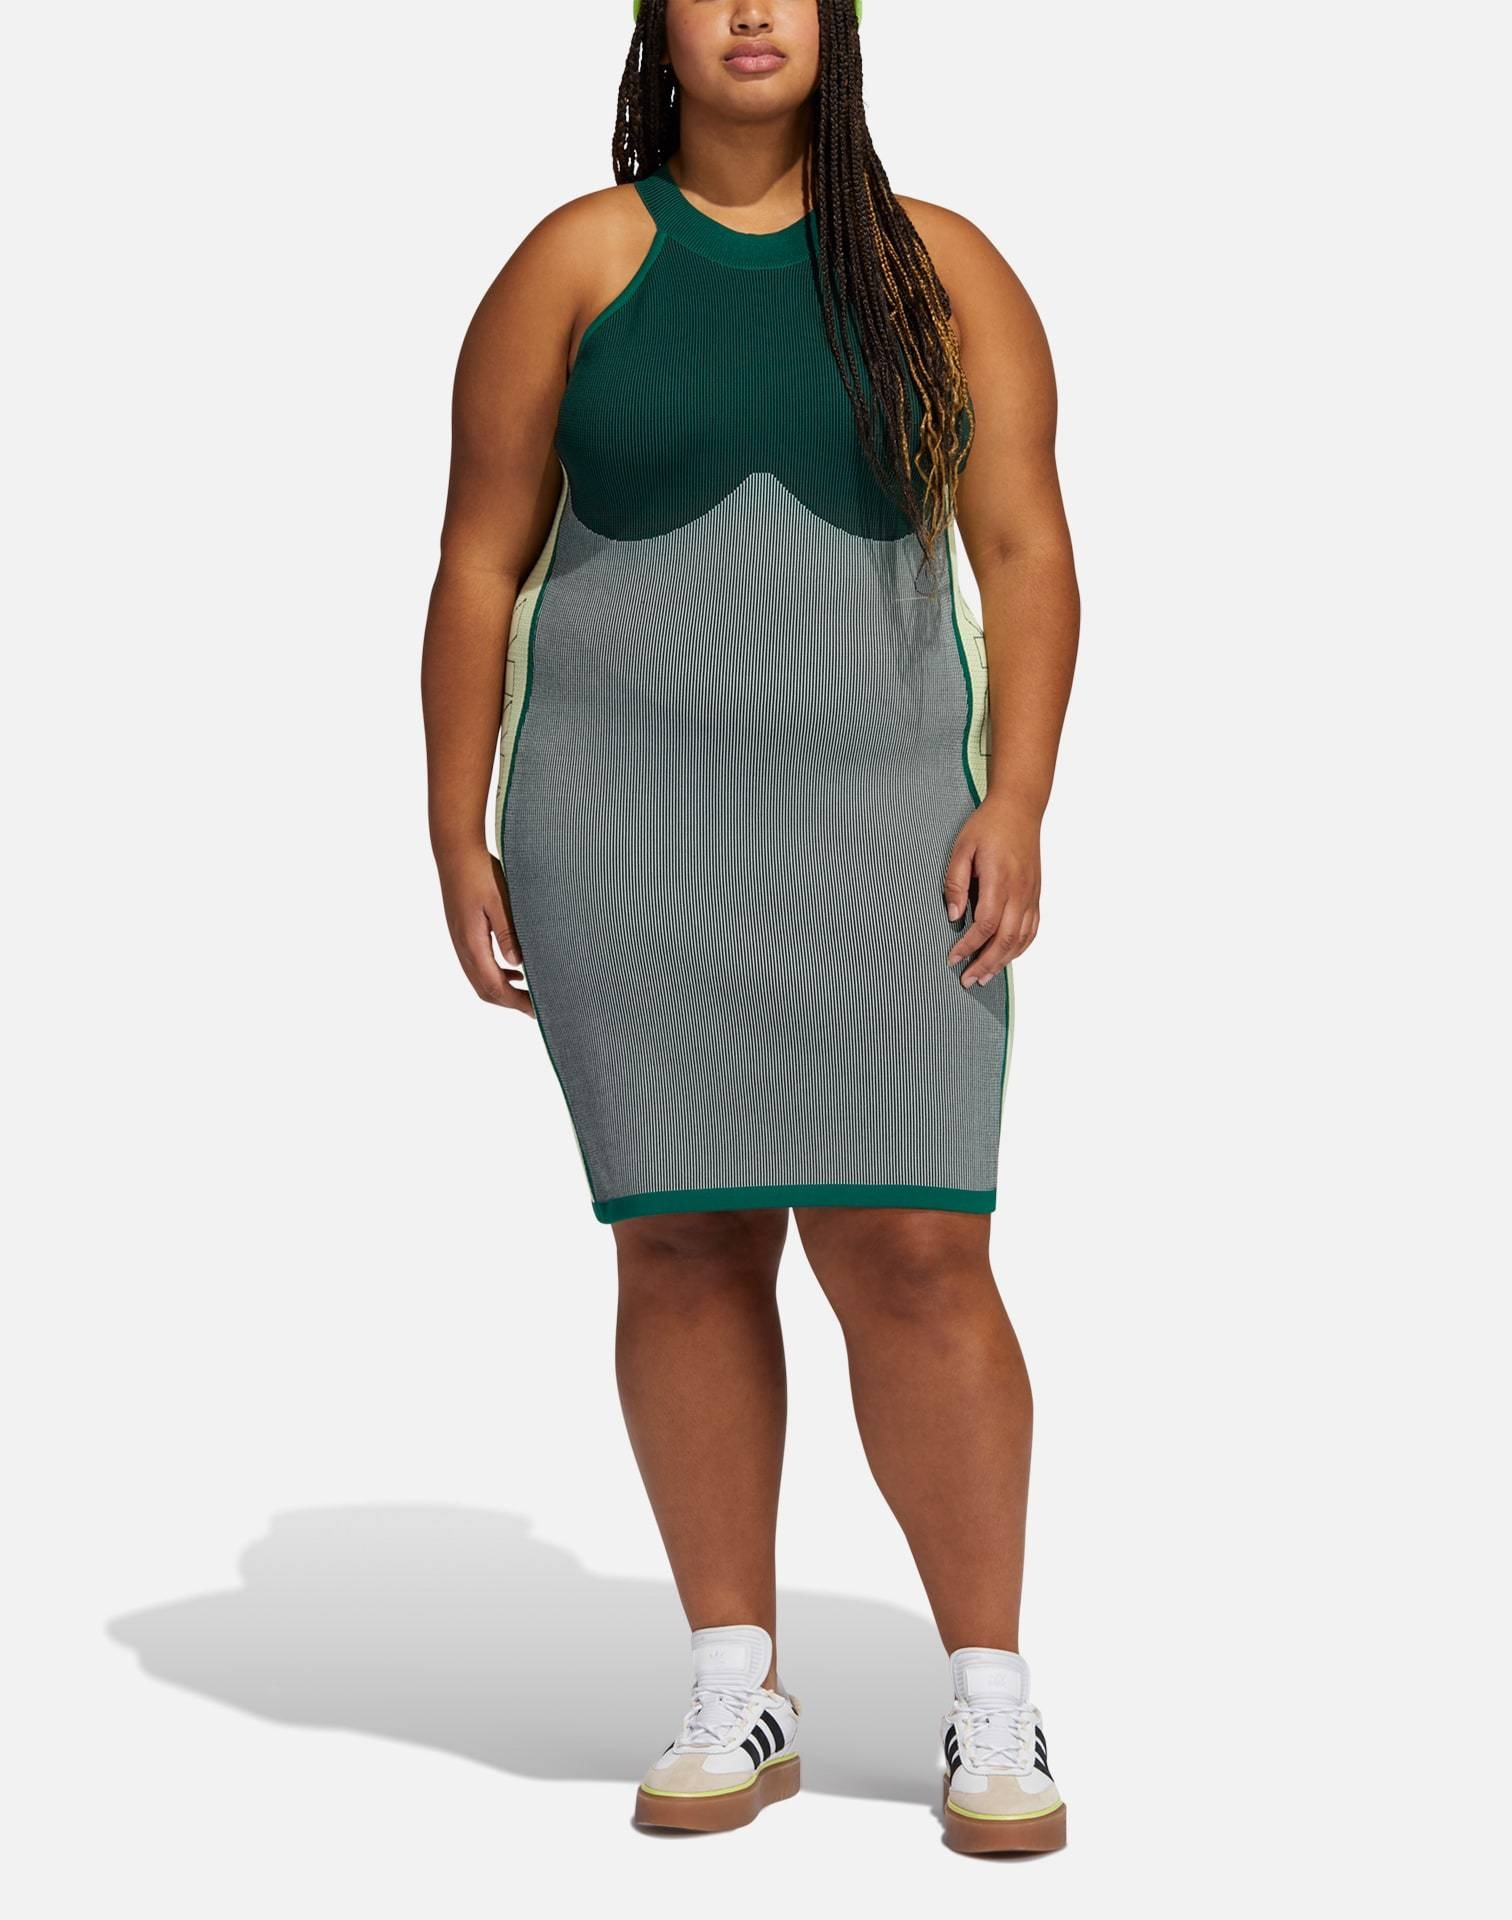 Adidas IVY PARK KNIT LOGO DRESS (PLUS SIZE)